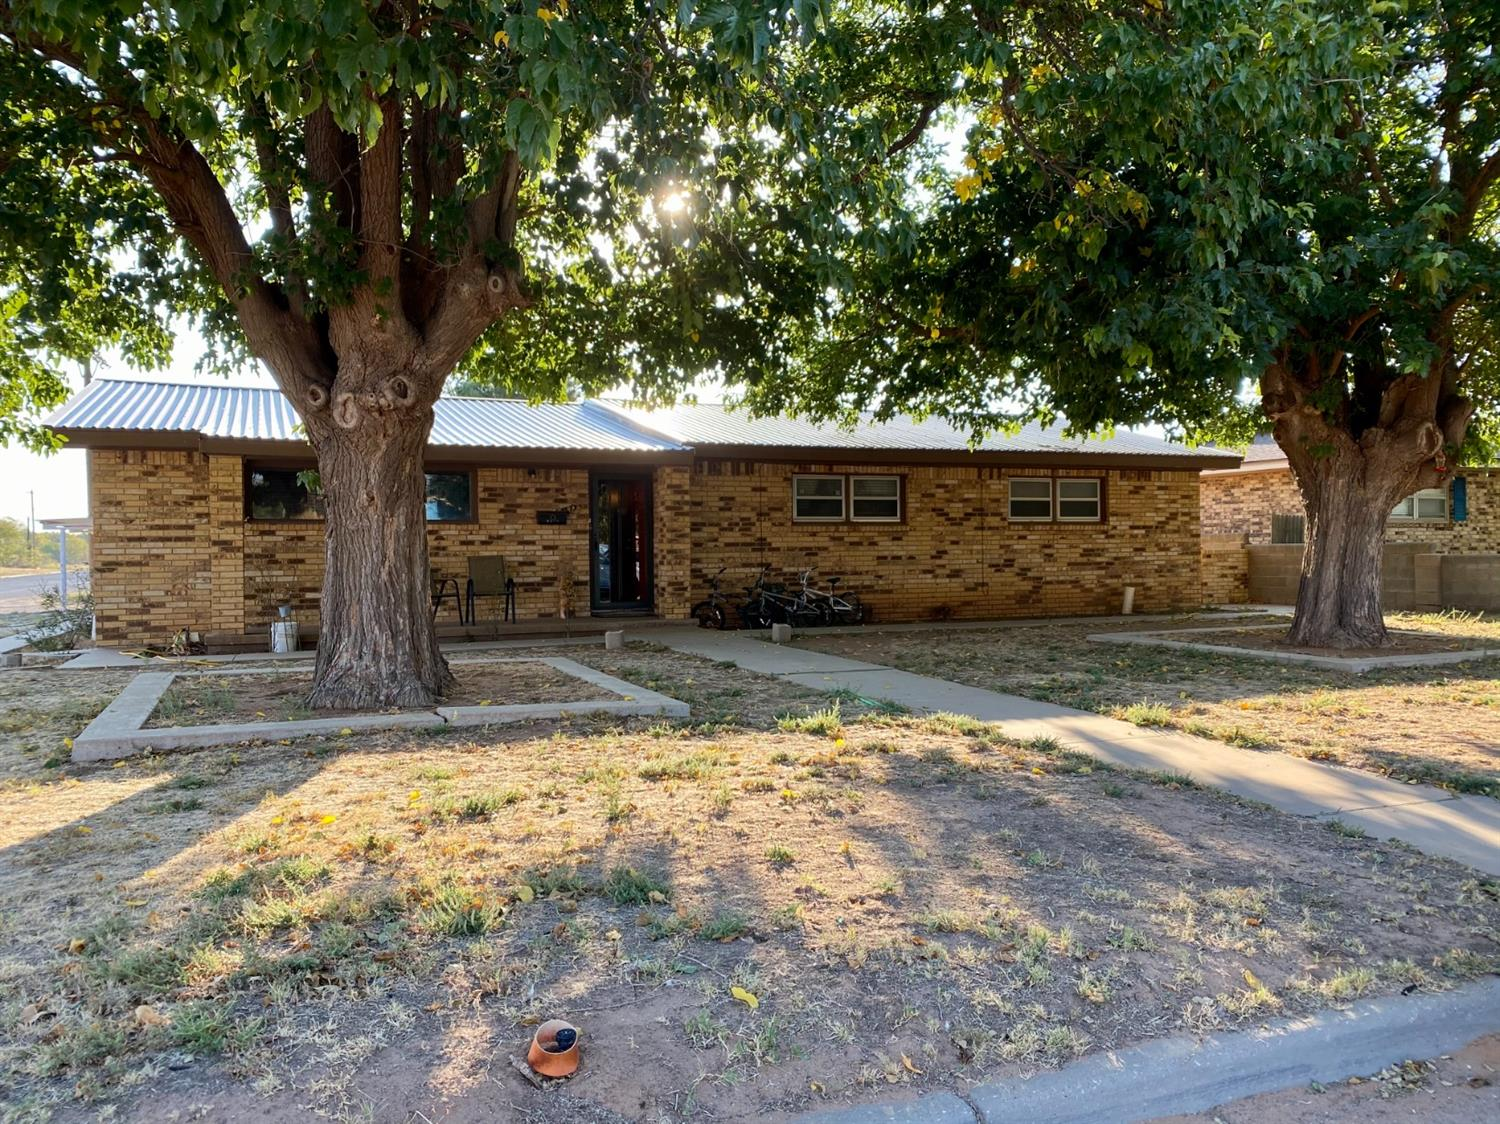 Looking for a home right across the street from a park & city pool?! If so, this is the home for you! Nice house on corner lot. It offers, 3 bed, 2 bath, 2 living areas and a good size backyard. Dont miss this one!